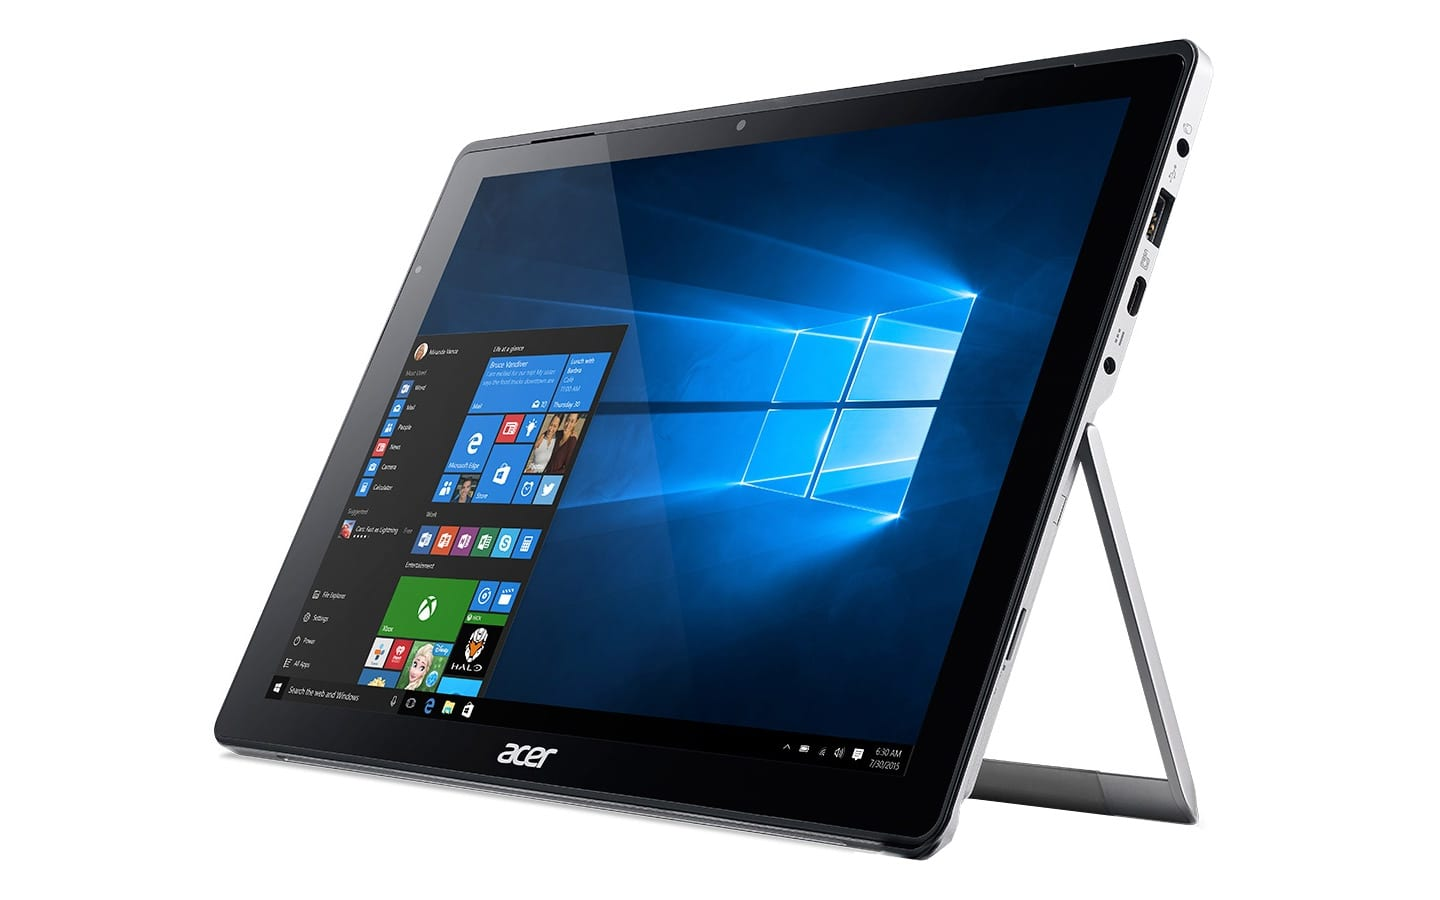 acer va pr senter une nouvelle tablette sous windows 10 la aspire switch alpha 12 s. Black Bedroom Furniture Sets. Home Design Ideas